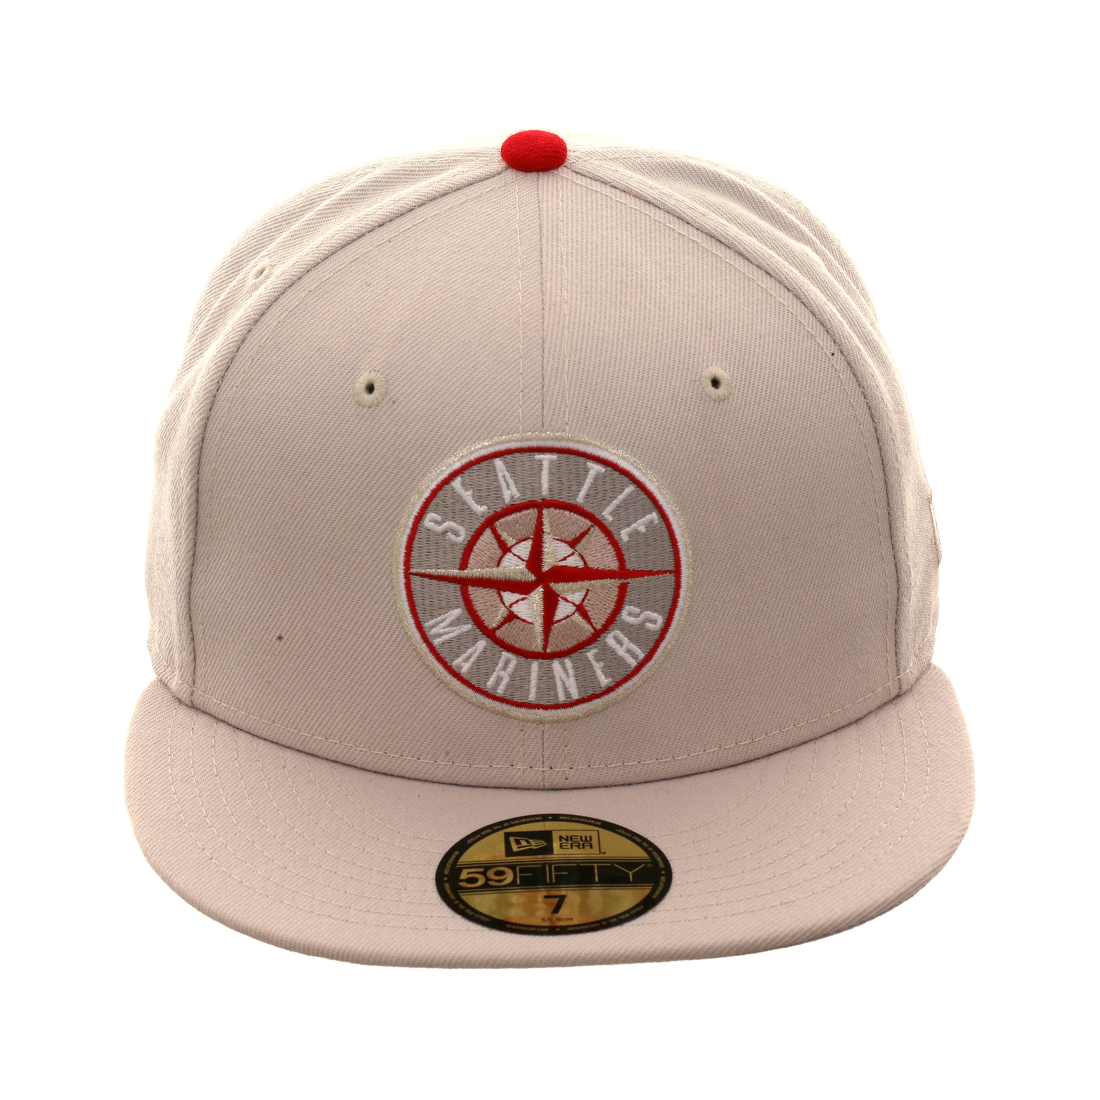 more photos f8b8f 7b78a Exclusive New Era 59Fifty Seattle Mariners Patch Hat - Stone, Red,   39.99